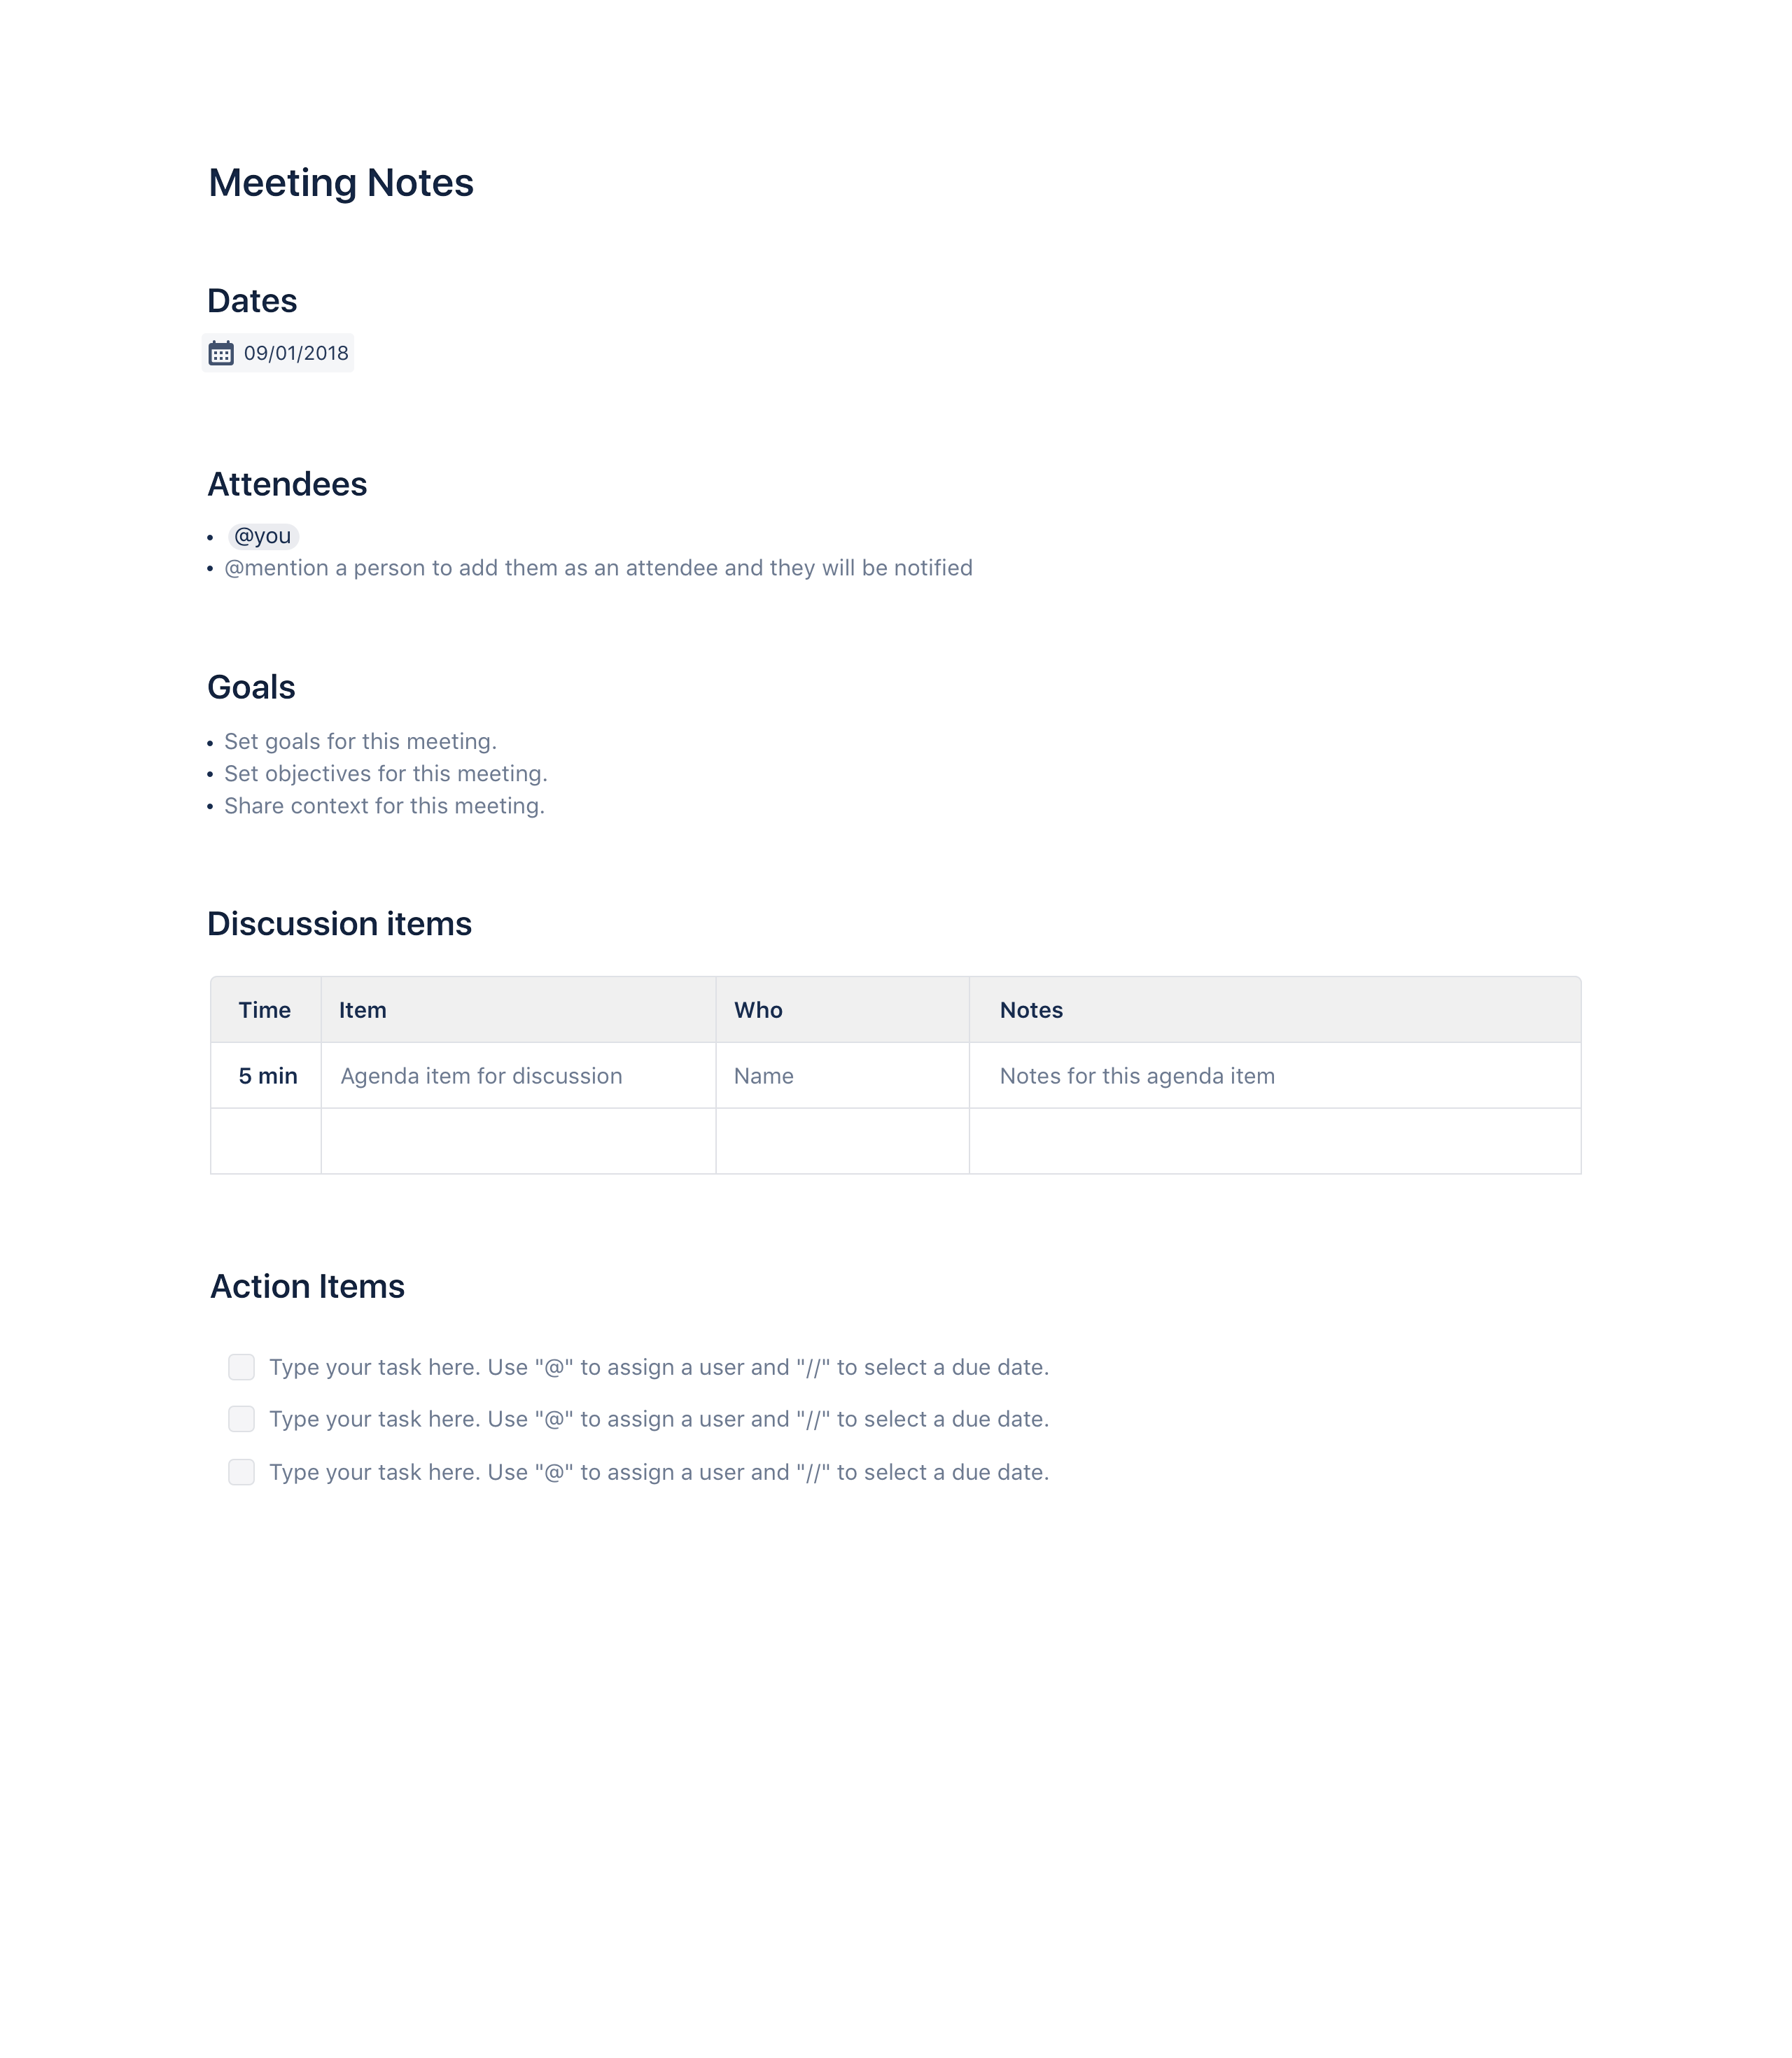 Meeting minutes template - Confluence | Atlassian